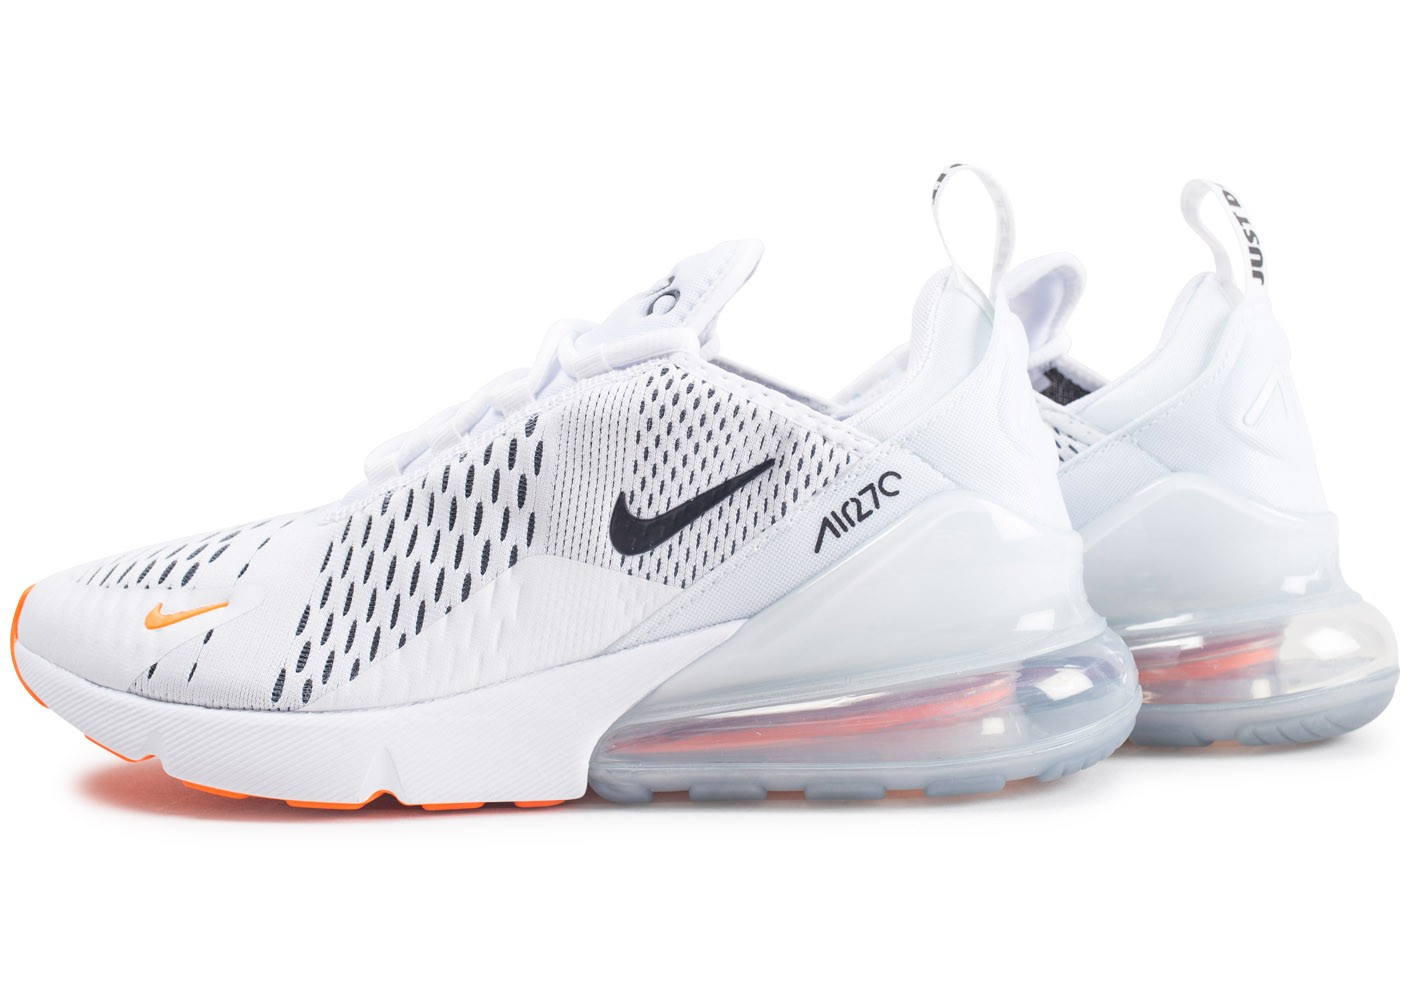 detailed look 30b99 02949 Cliquez pour zoomer Chaussures Nike Air Max 270 Just do It blanc total  orange vue extérieure ...